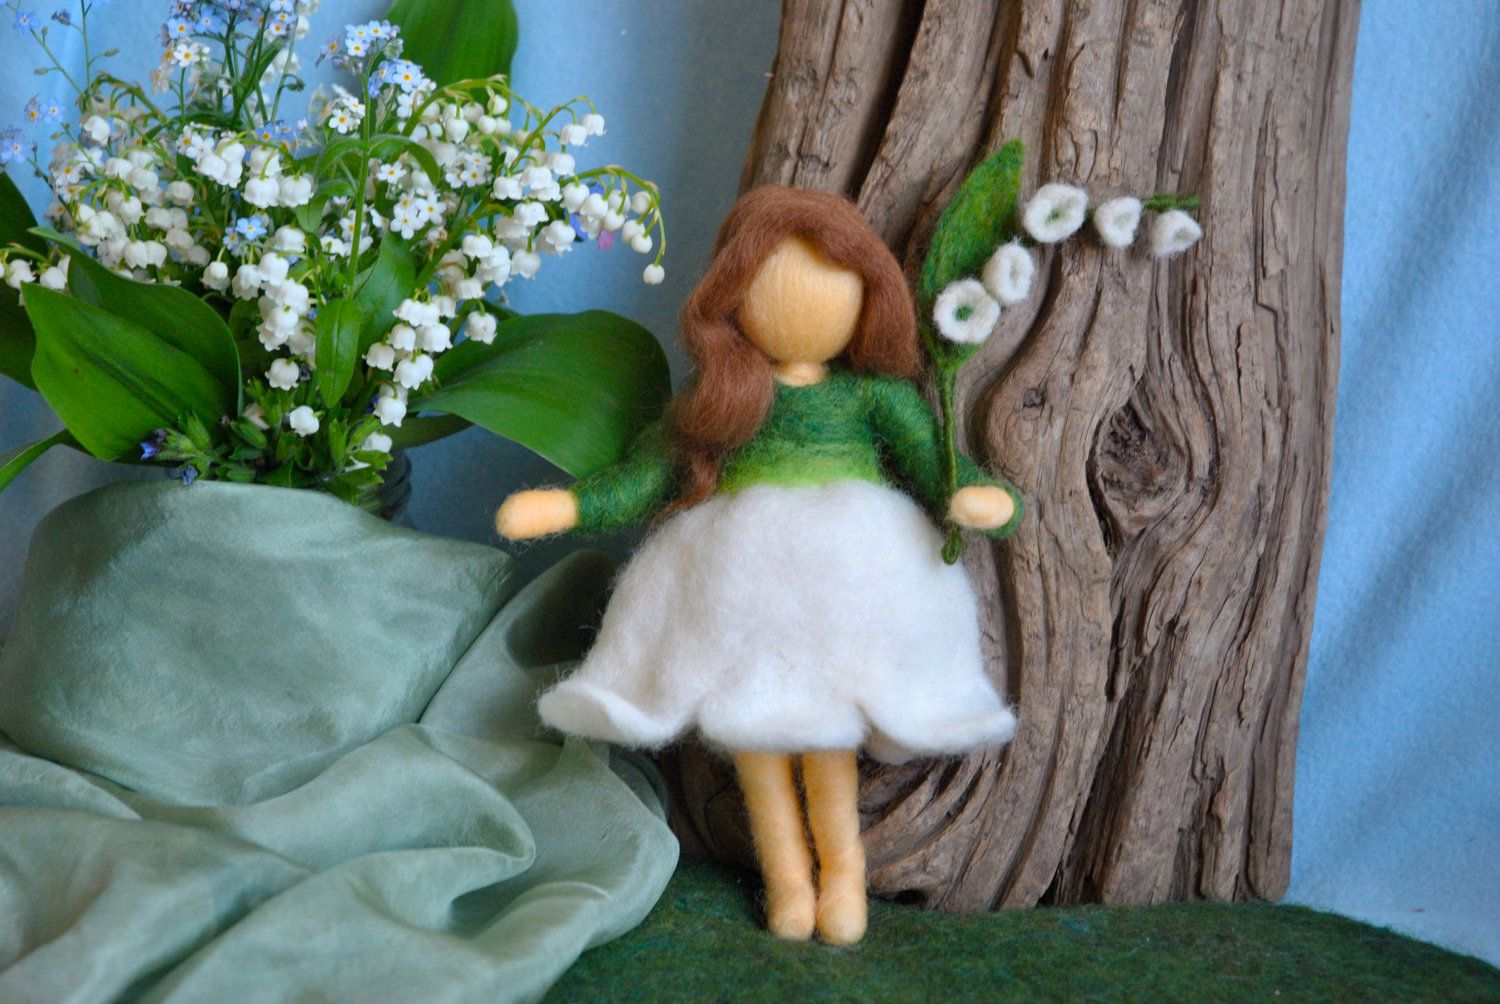 Lilly of the valley flower  fairy by MagicWool of Quebec, Canada.